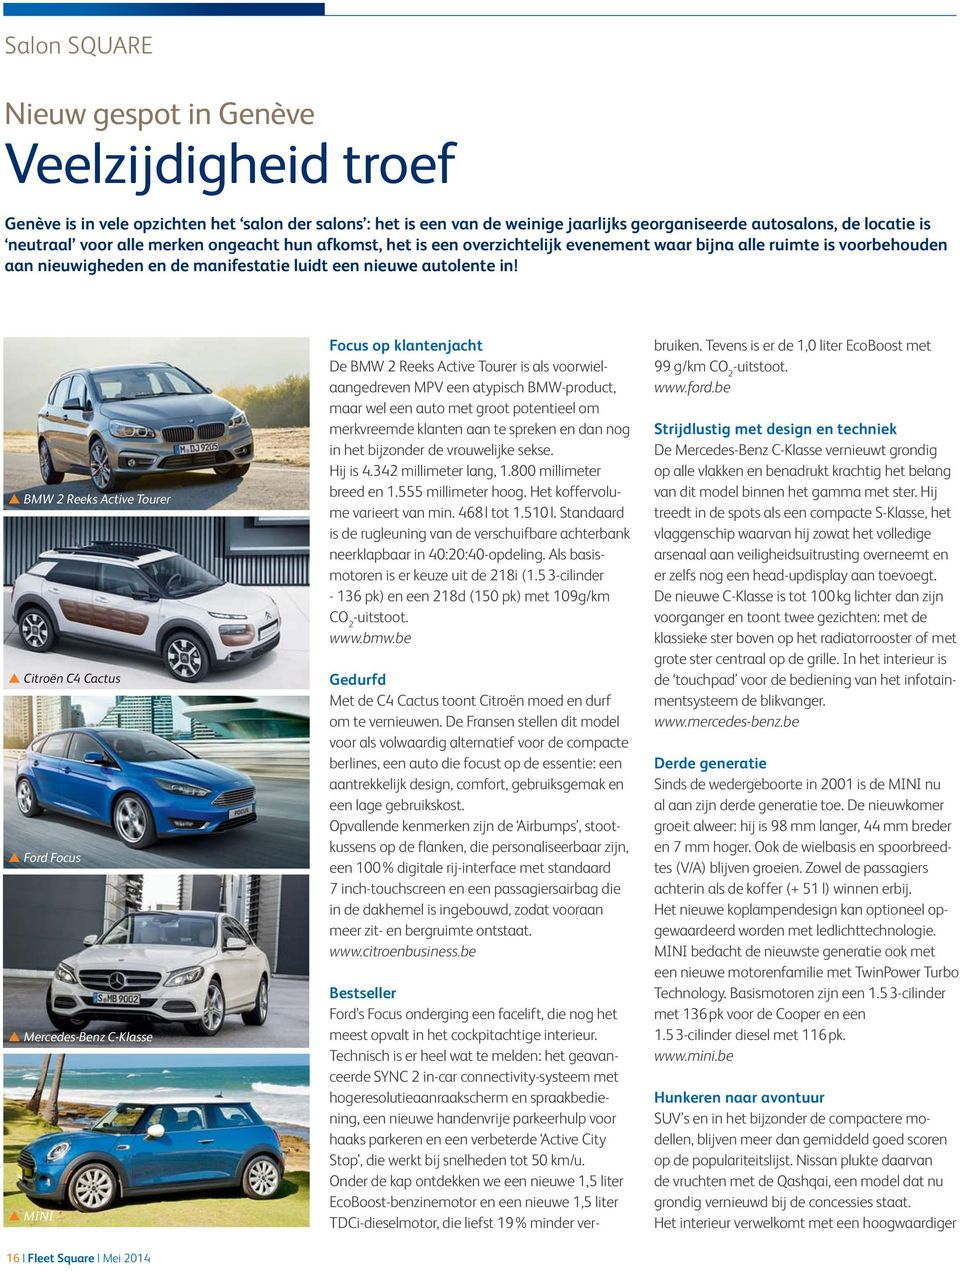 BMW 2 Reeks Active Tourer Citroën C4 Cactus Ford Focus Mercedes-Benz C-Klasse MINI Focus op klantenjacht De BMW 2 Reeks Active Tourer is als voorwielaangedreven MPV een atypisch BMW-product, maar wel